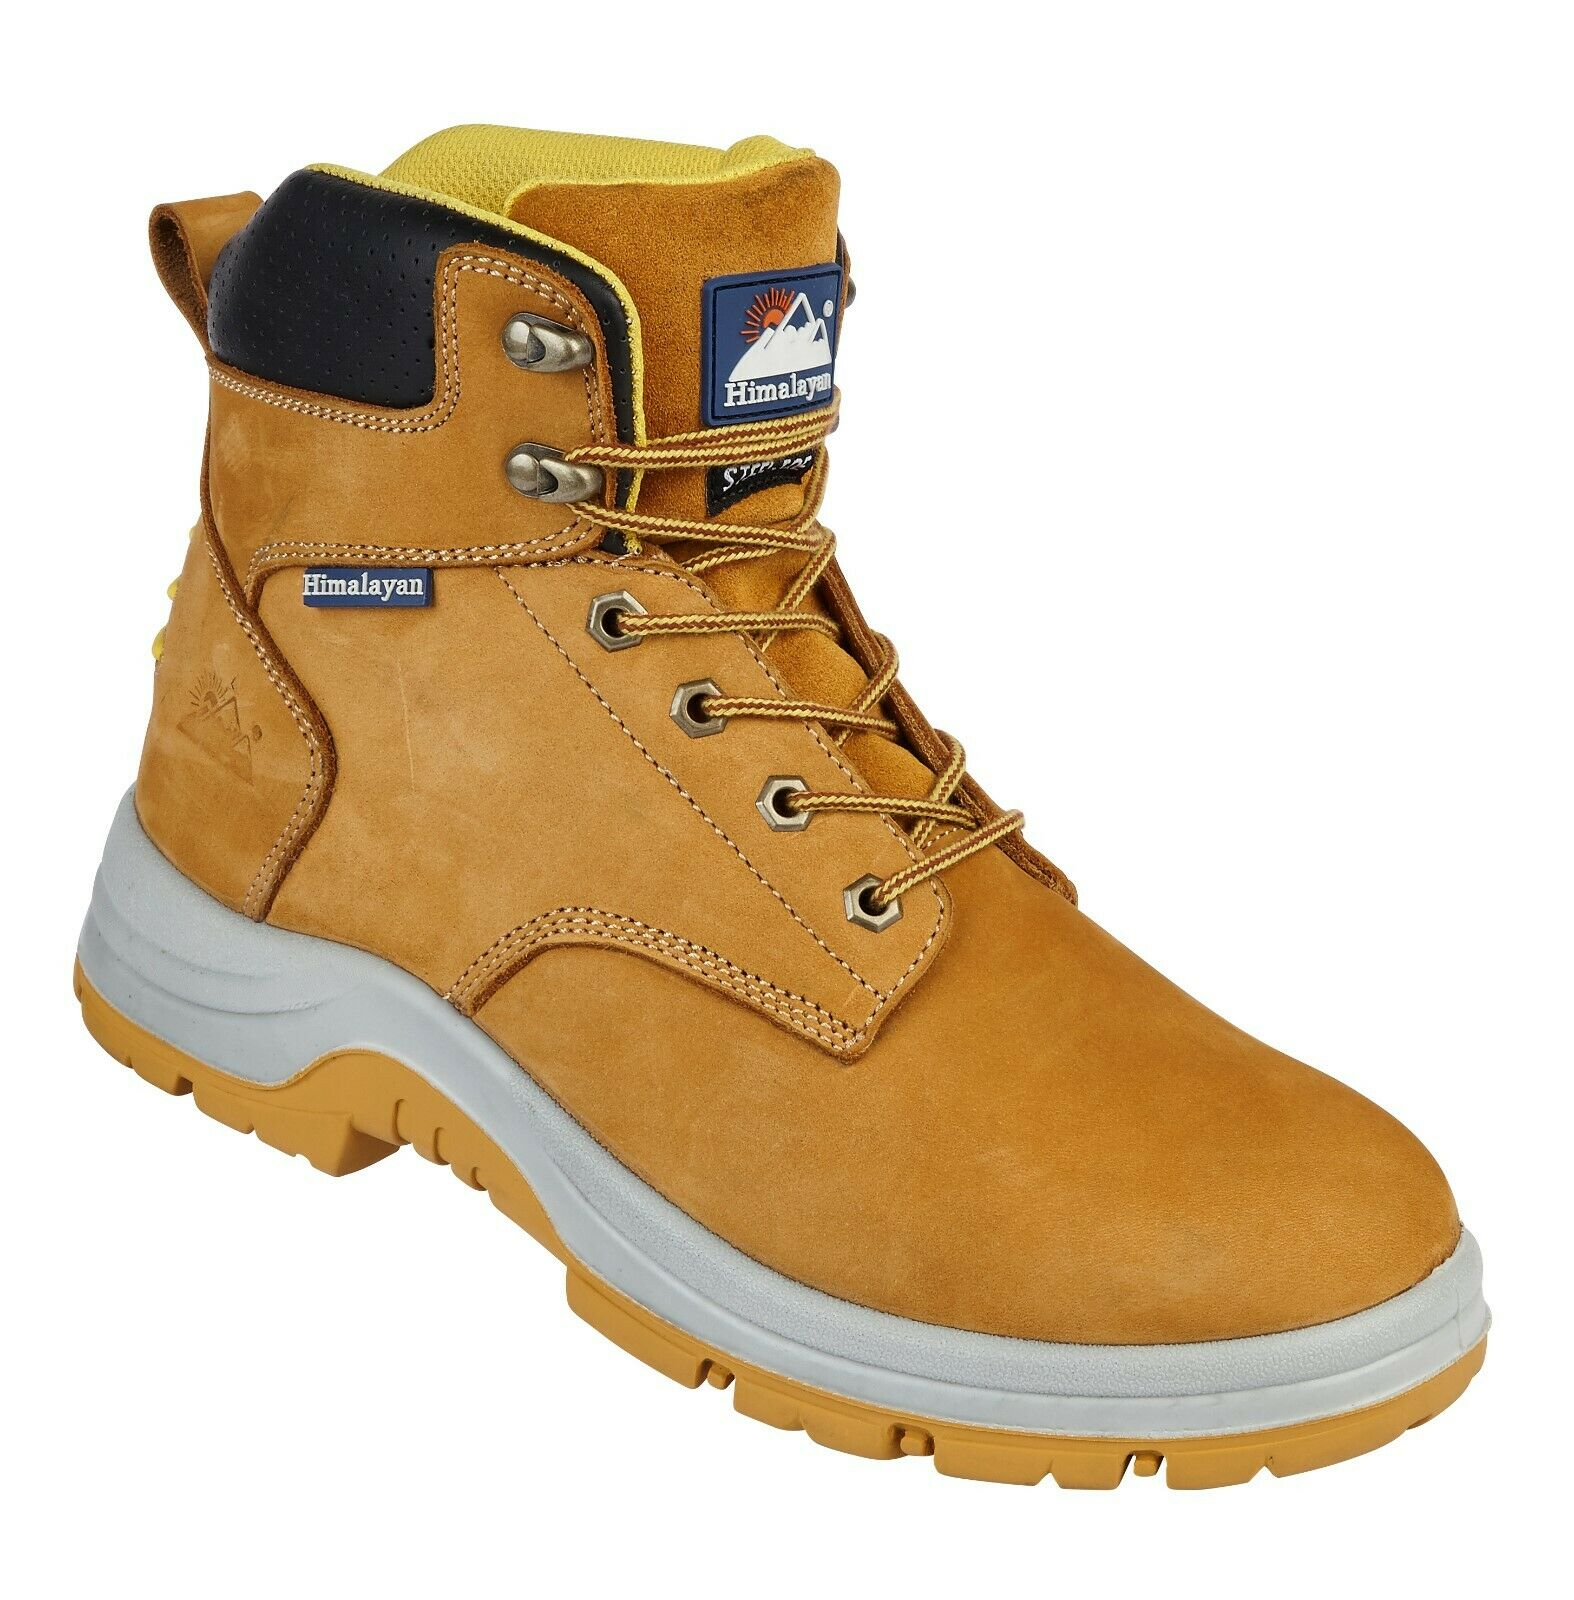 Himalayan 5250 Safety Boots S1P Steel Toe Cap Leather Industrial Work Mens shoes